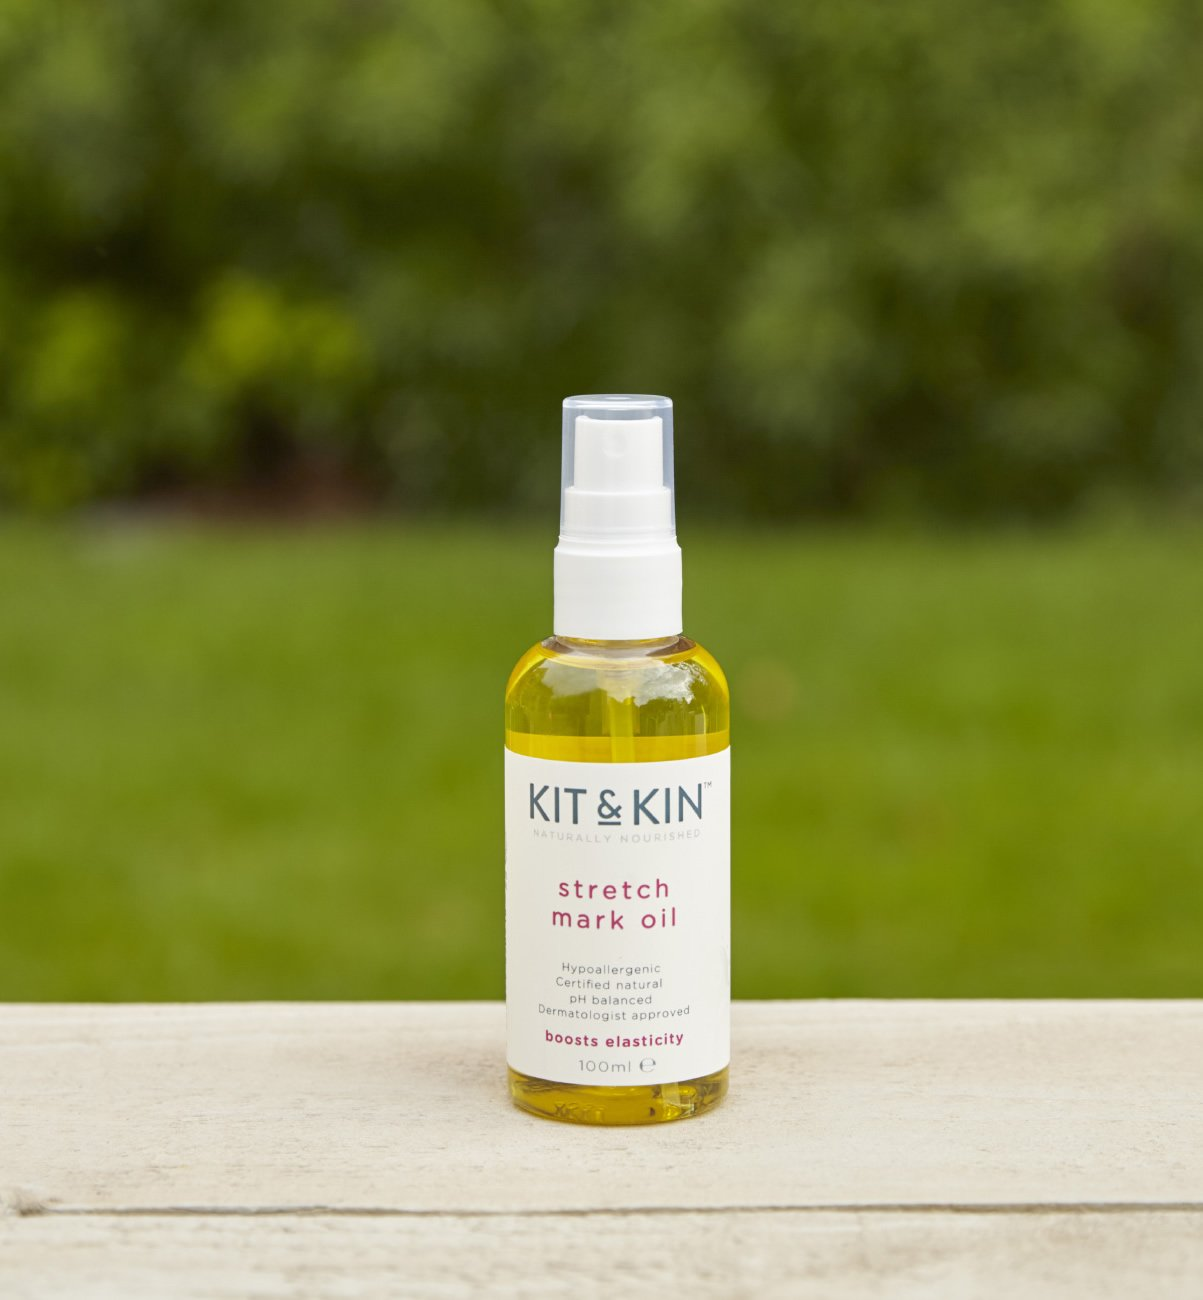 Kit & Kin Stretch Mark Oil